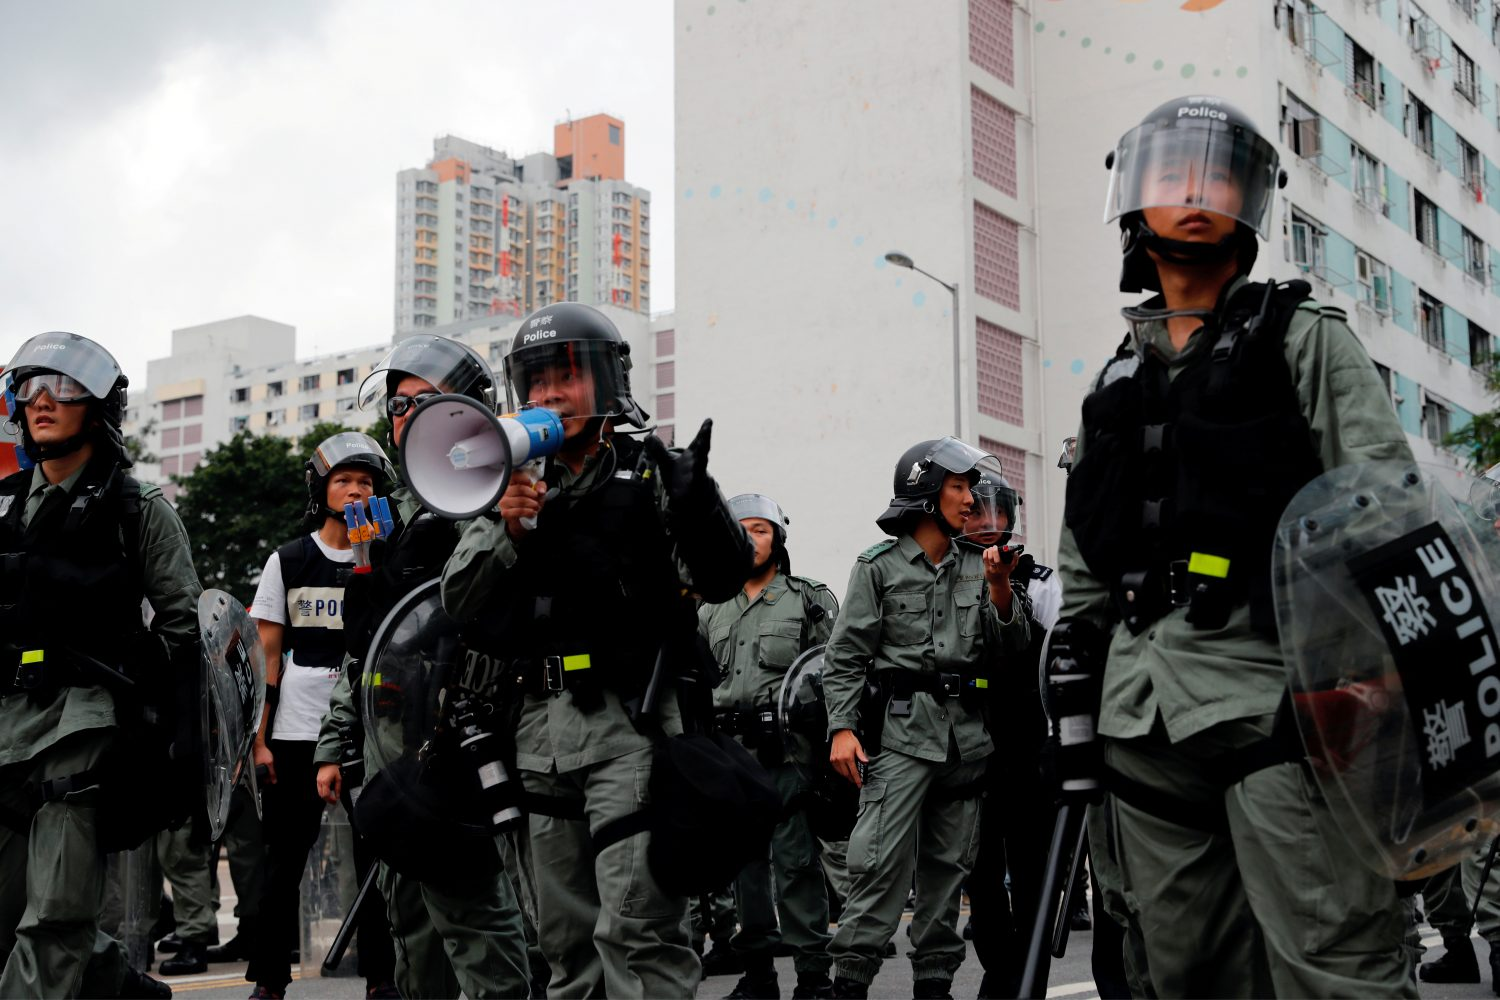 FILE PHOTO: Riot police ask anti-extradition bill protesters to leave in front of public housing after a march at Sha Tin District of East New Territories, Hong Kong, China July 14, 2019. REUTERS/Tyrone Siu/File Photo